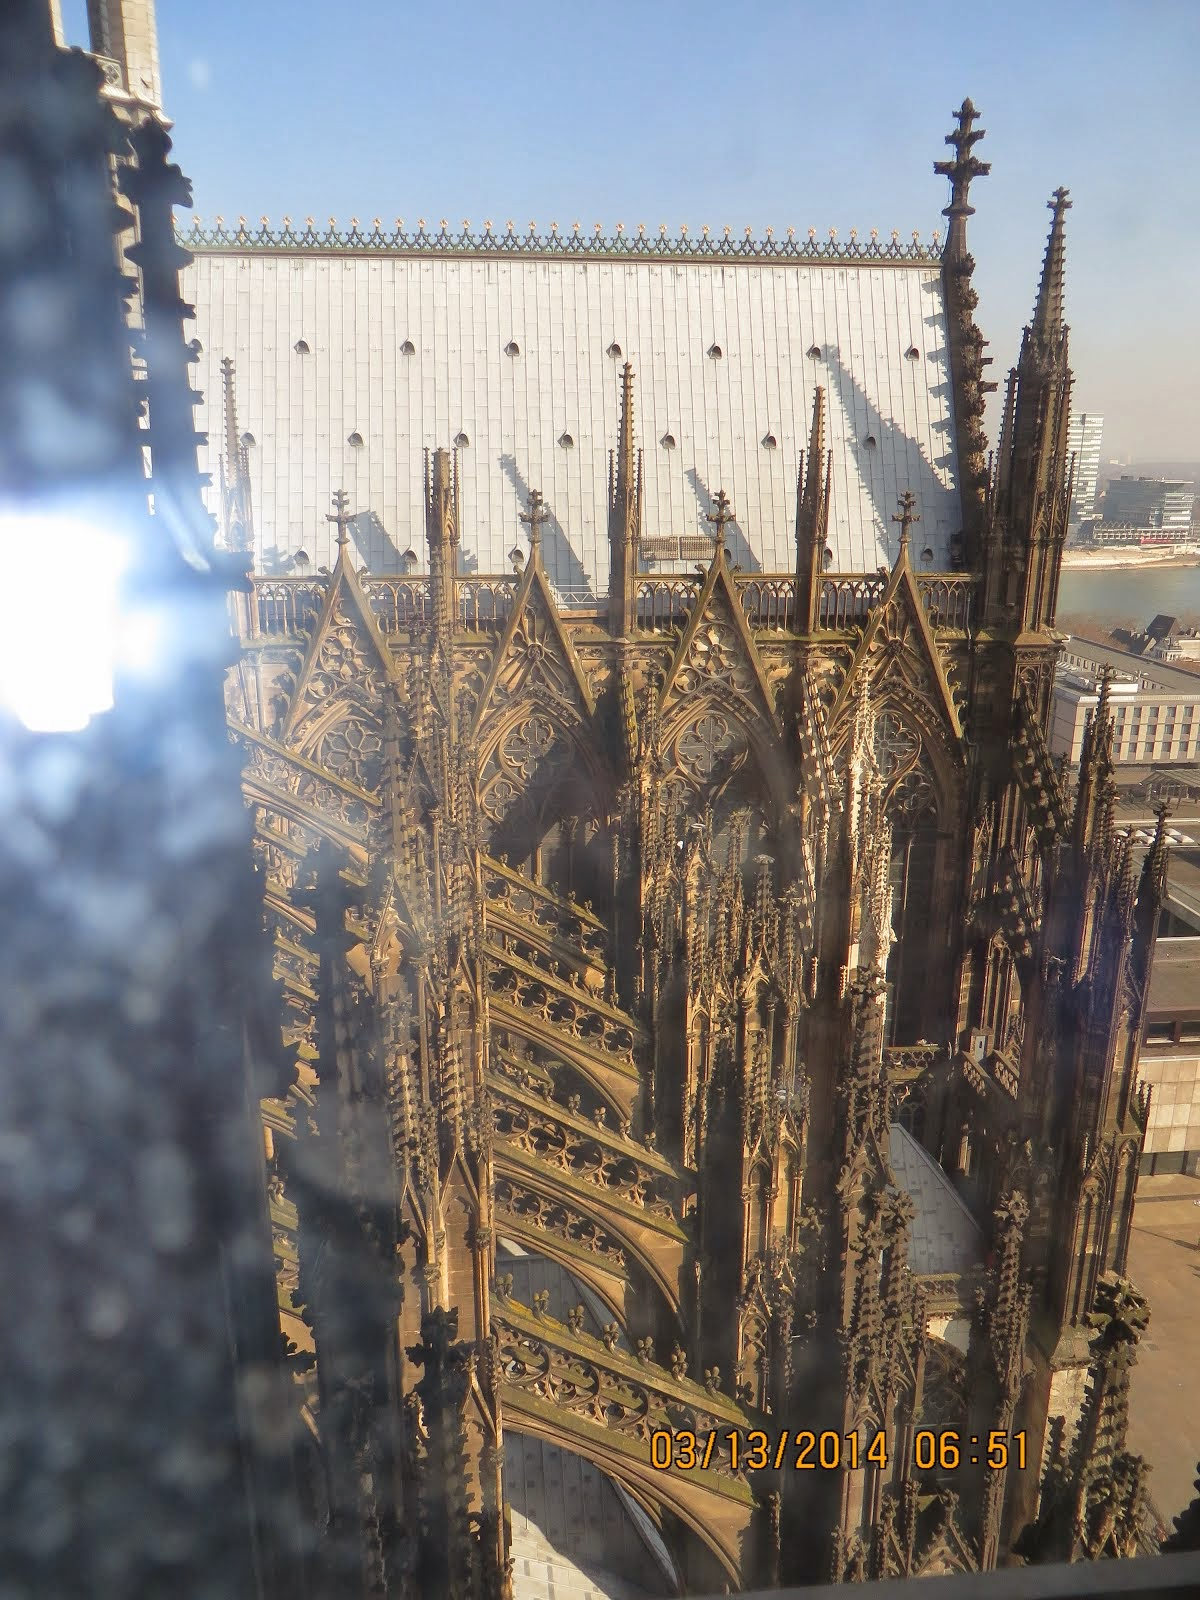 Cologne Cathedral from roof level, with buttresses, half way to top of towers